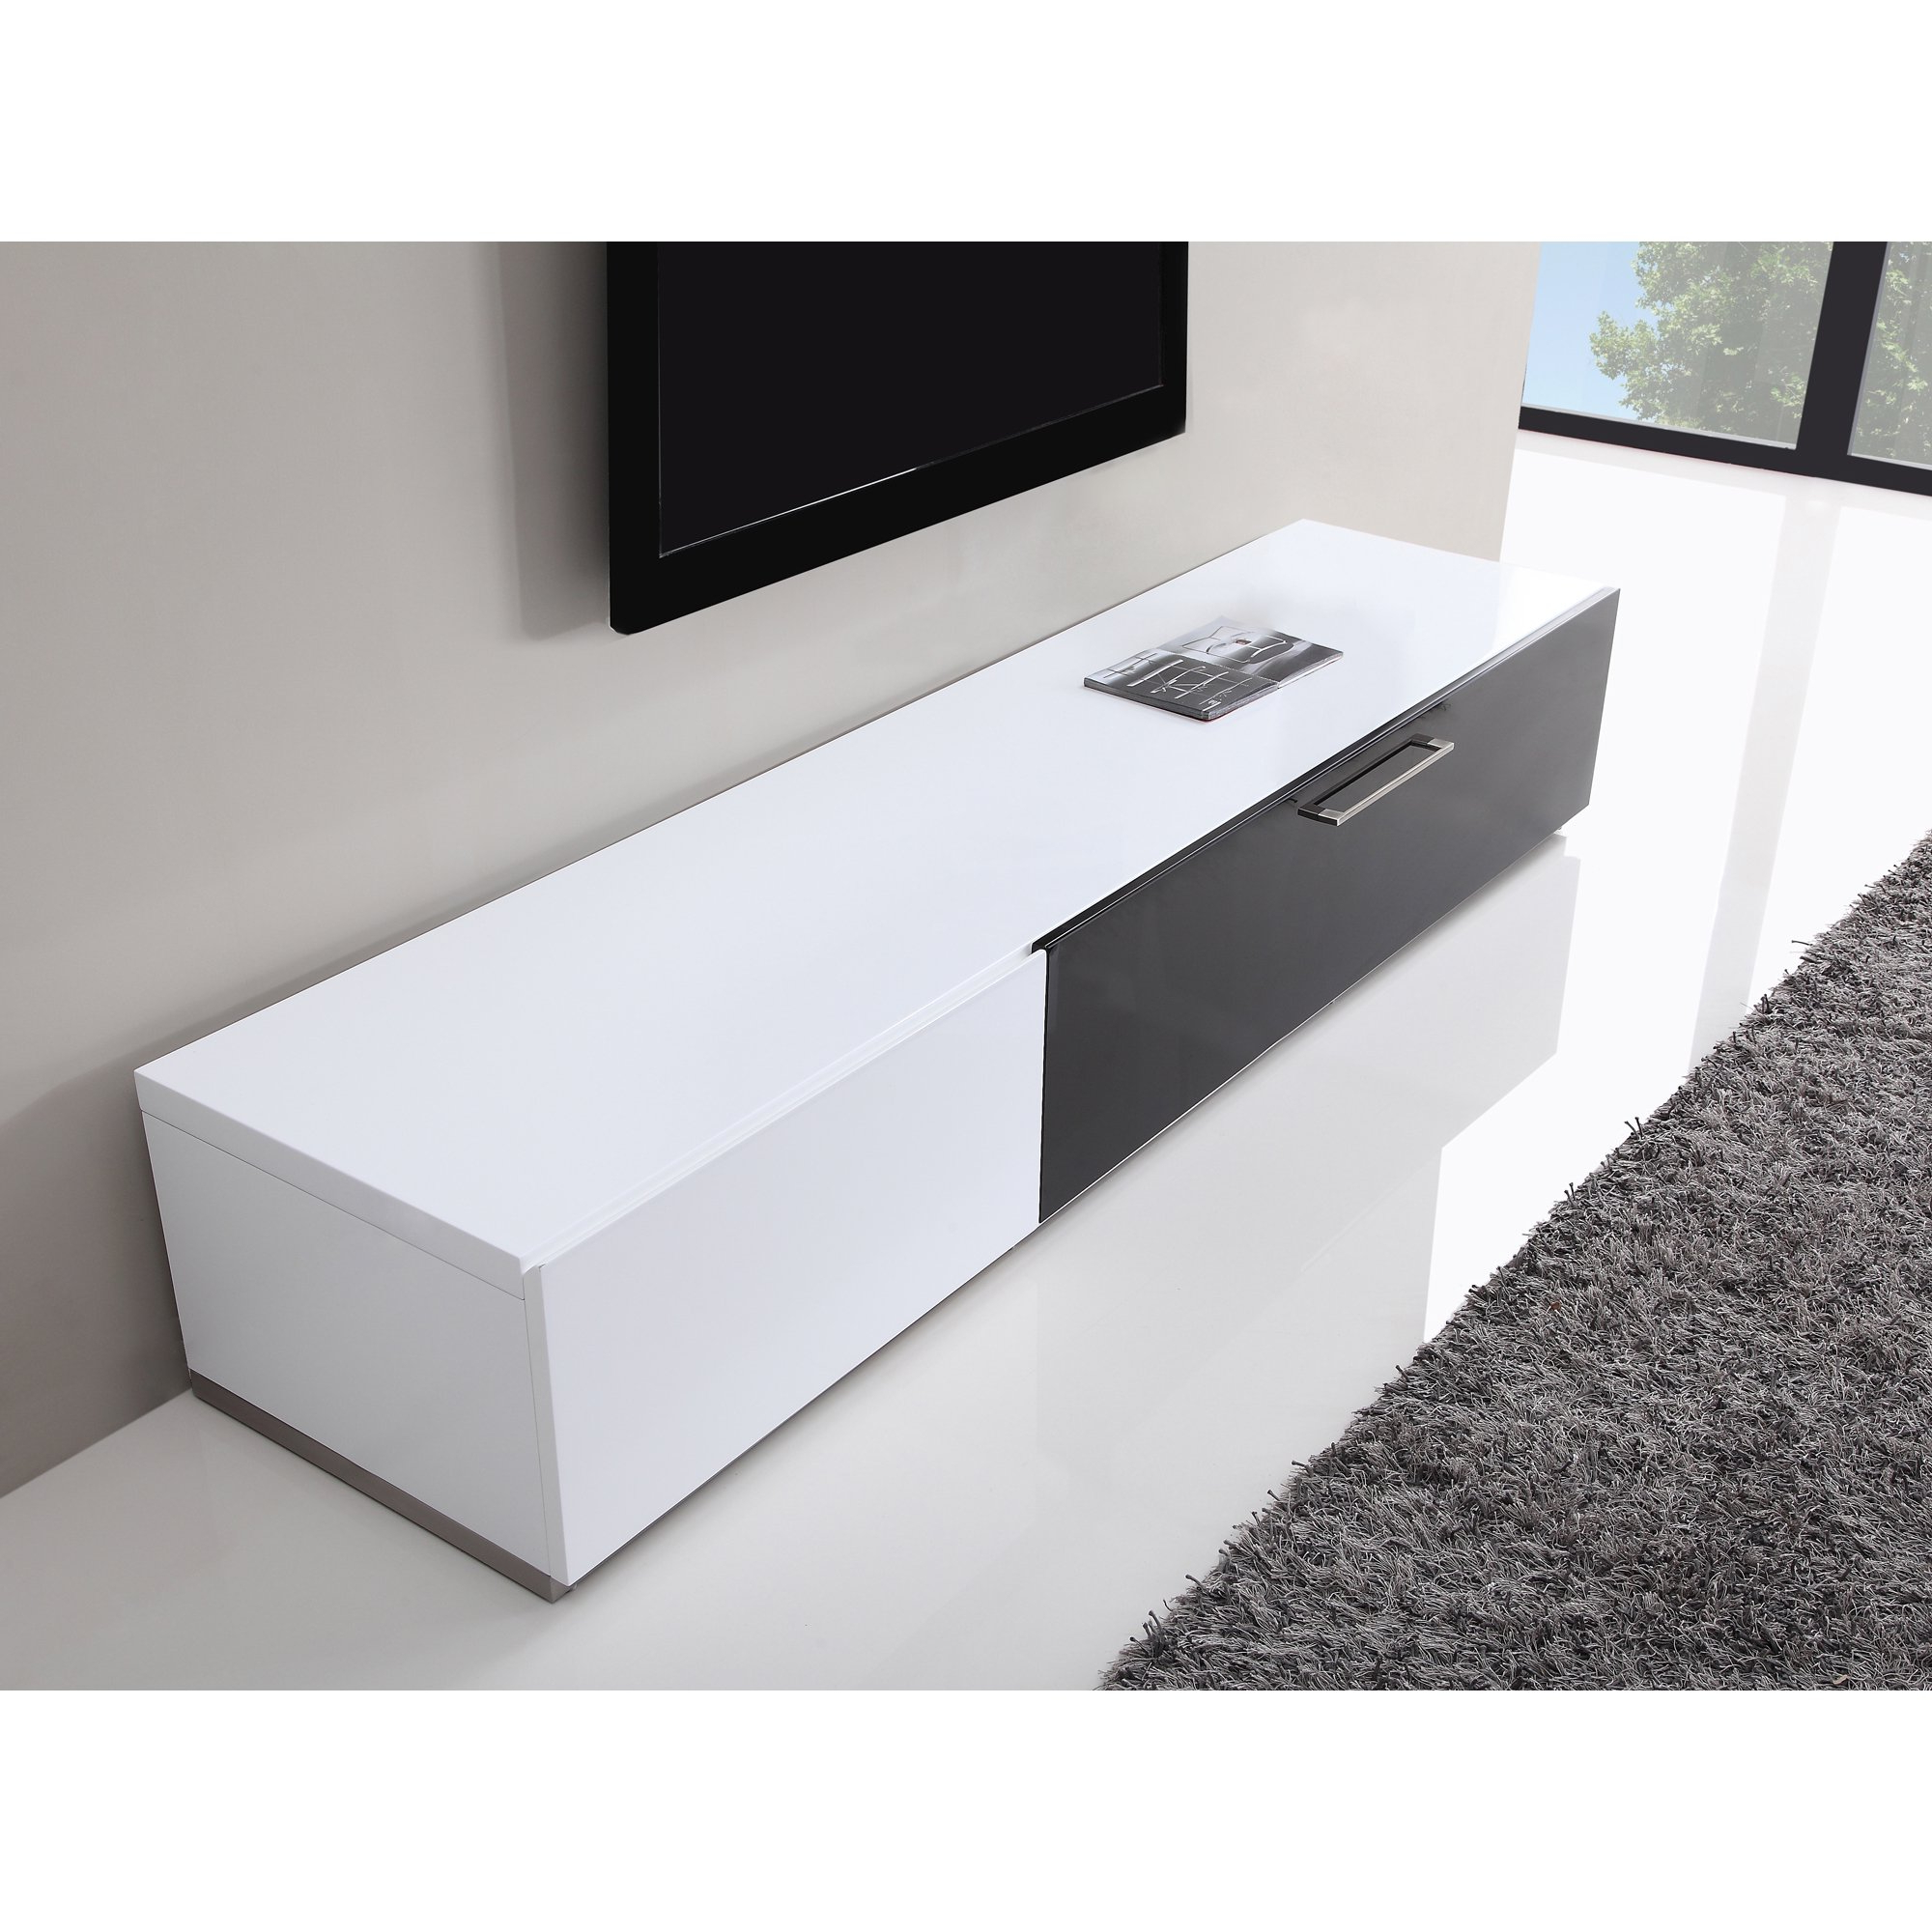 Fashionable White And Black Tv Stands Intended For Shop B Modern Producer White/ Black Modern Tv Stand With Ir Glass (View 8 of 20)